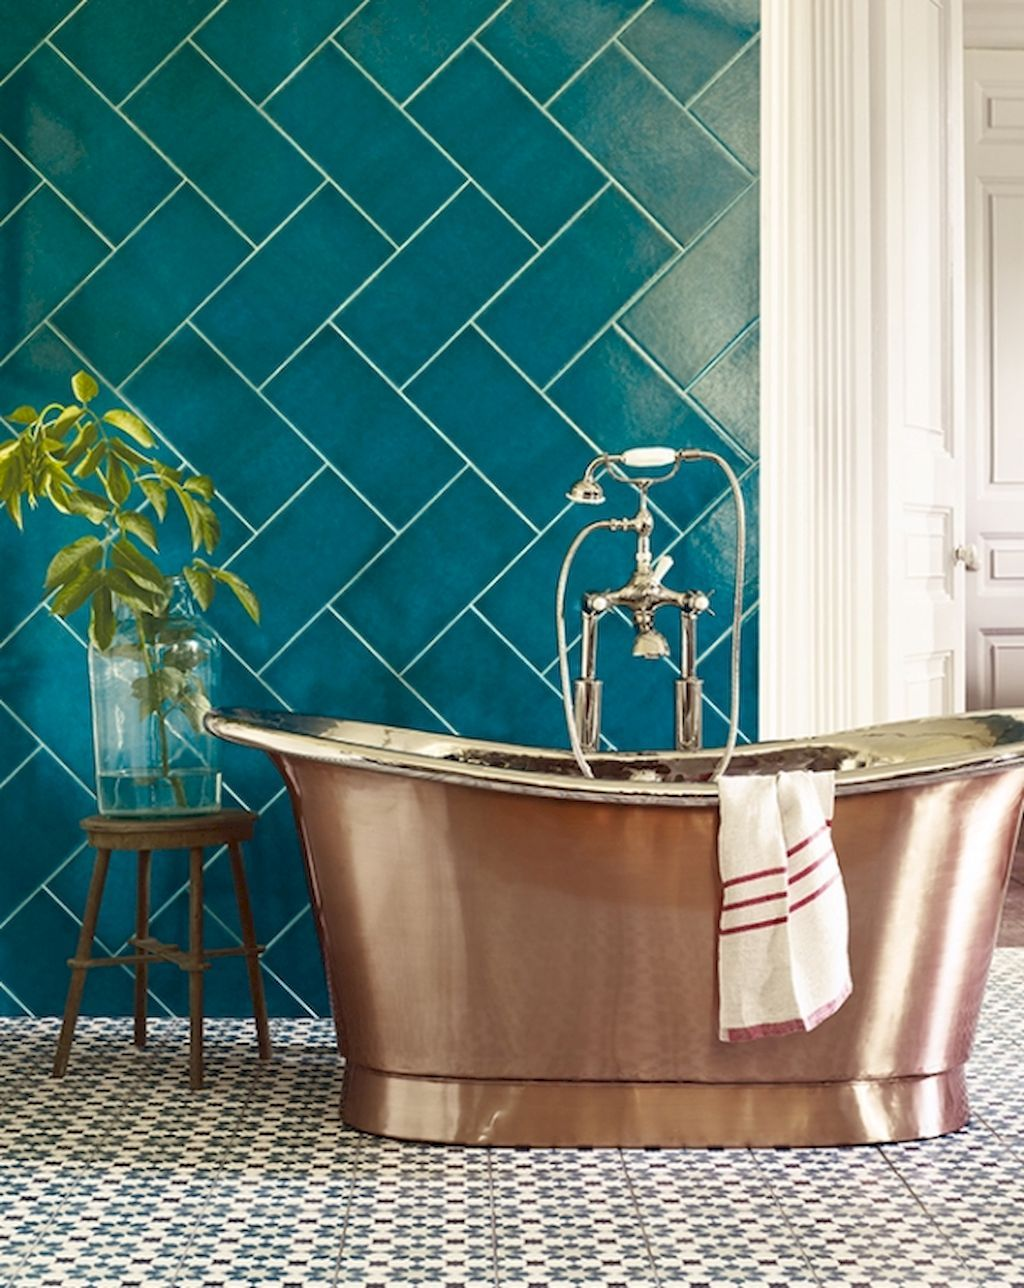 80 Best Inspire Bathroom Tile Pattern Ideas | Tile patterns ...